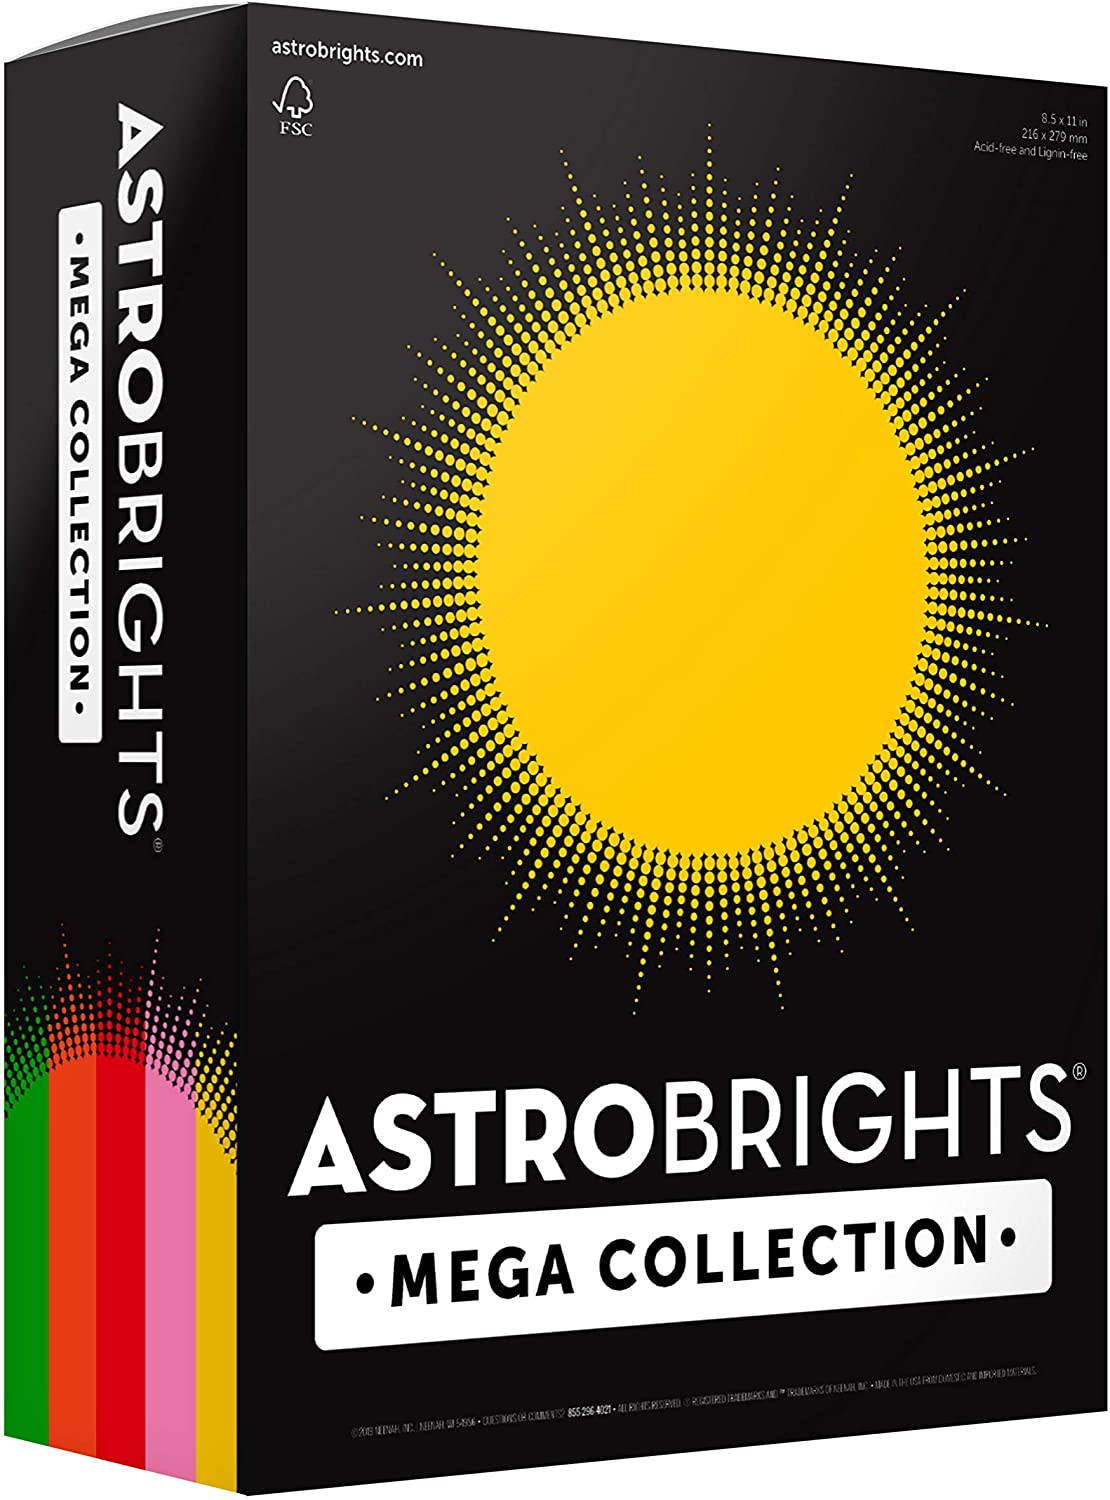 "Astrobrights Mega Collection Colored Paper, 8 ½ x 11, 24 lb/89 gsm, ""Retro"" 5-Color Assortment, 625 Ct. (91685)""Amazon Exclusive"" - More Sheets!"